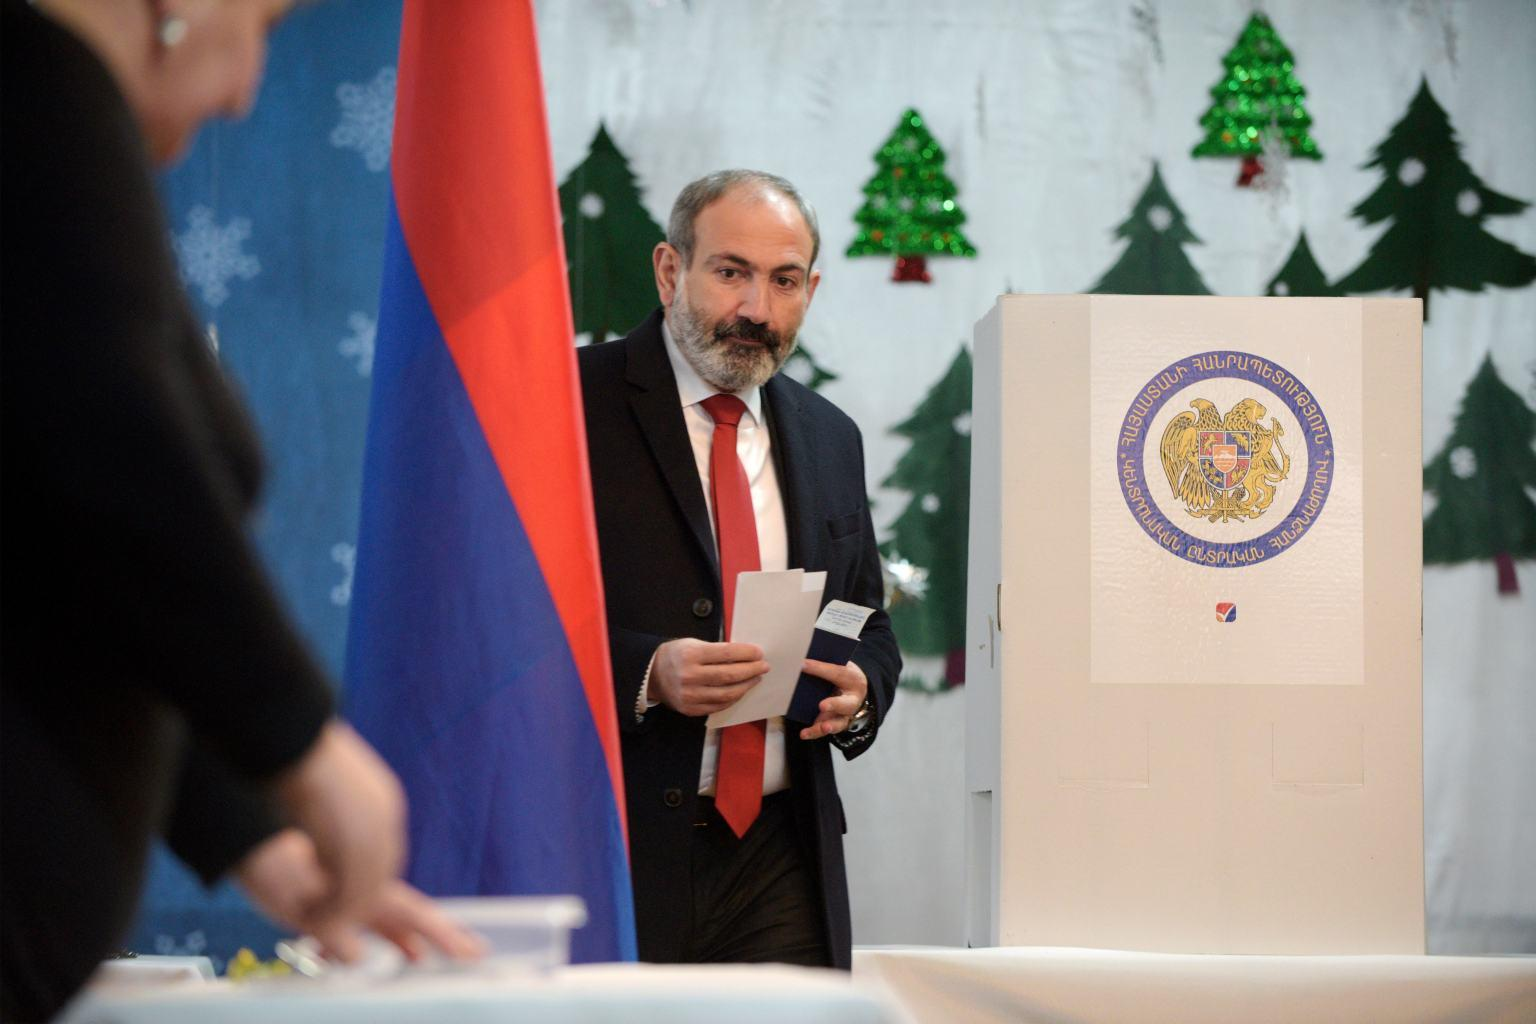 Pashinyan wins the elections in Armenia: What now?